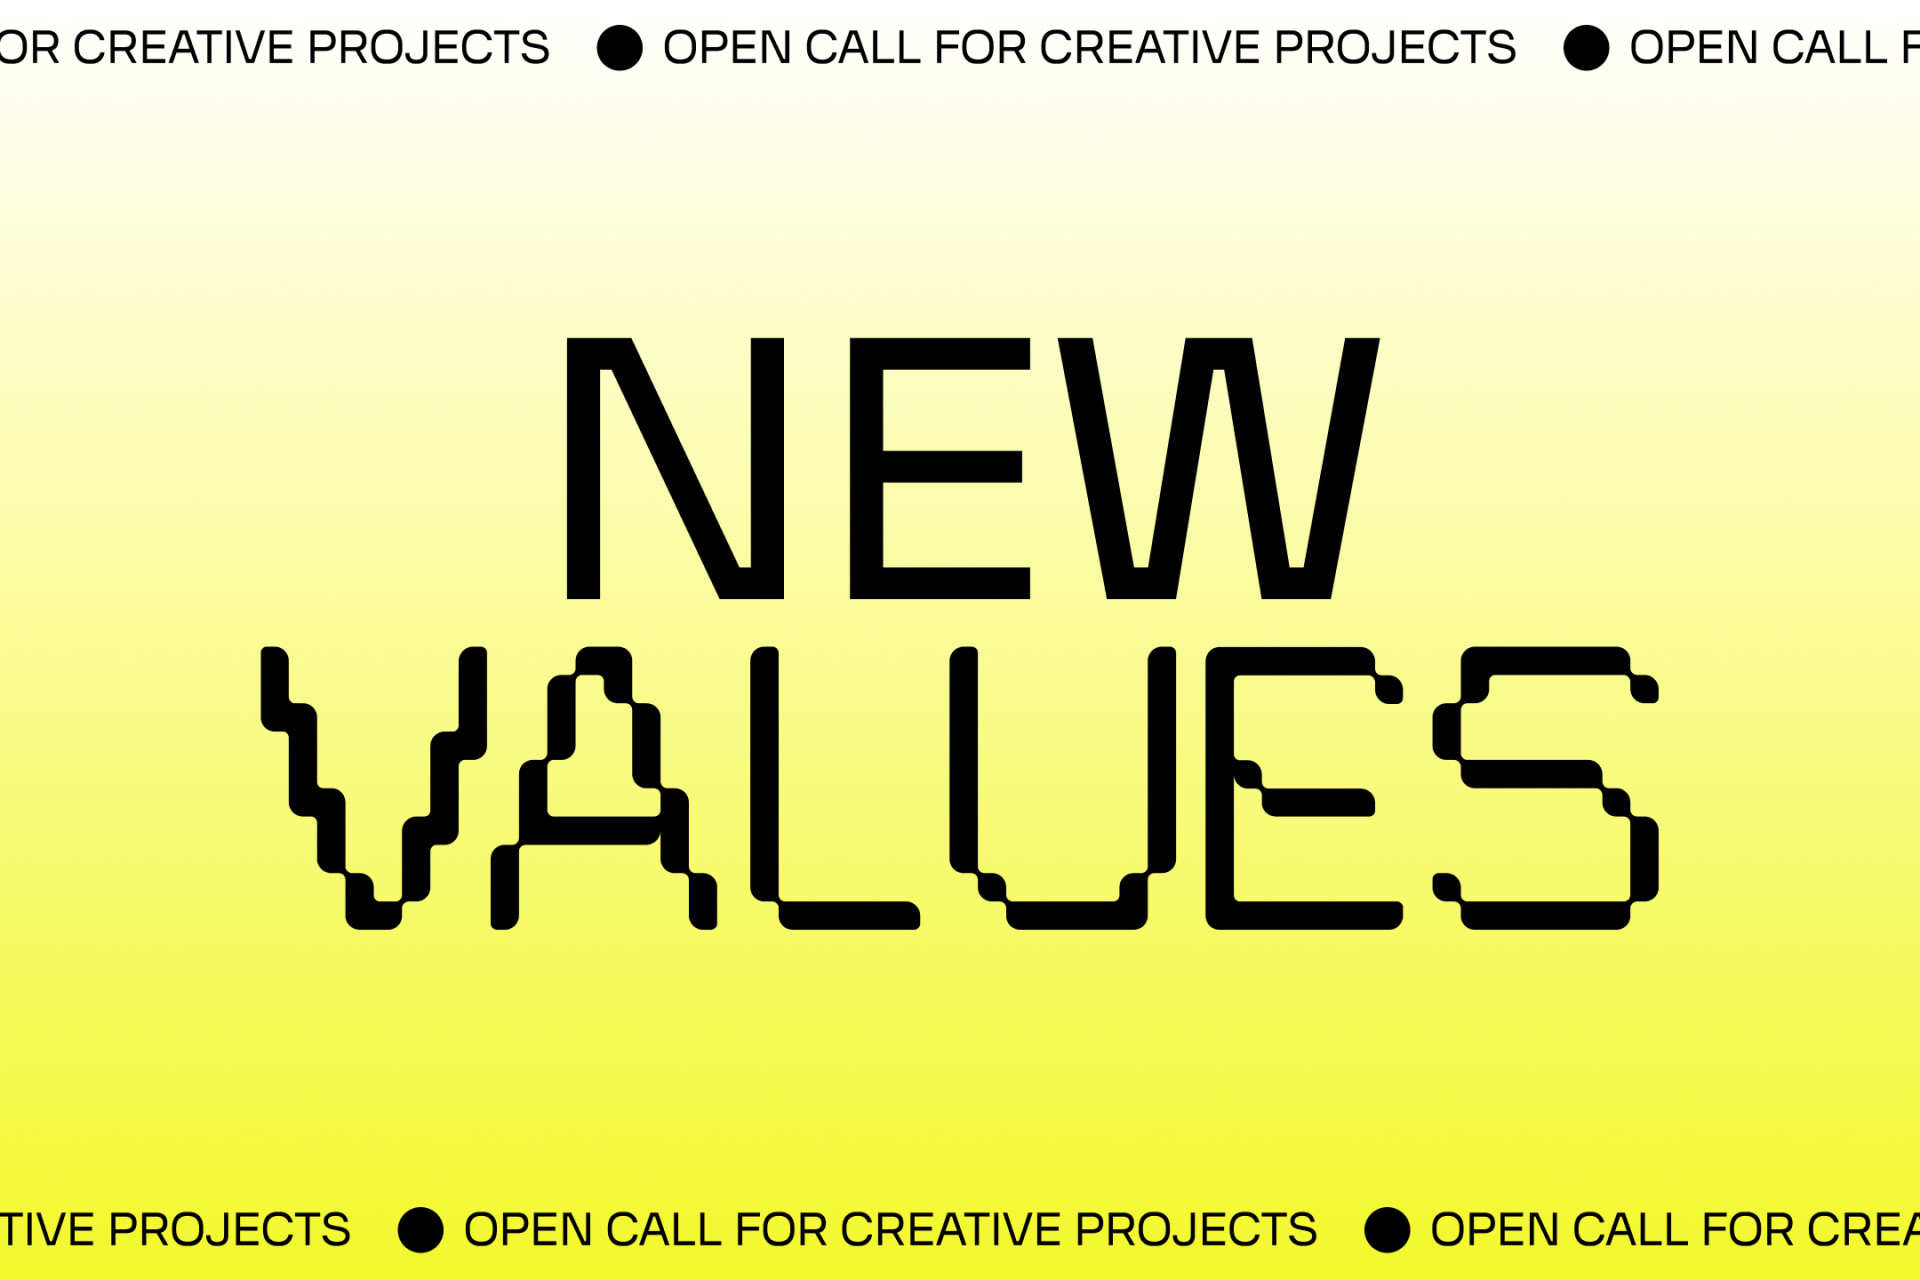 NEW VALUES for a new creative economy